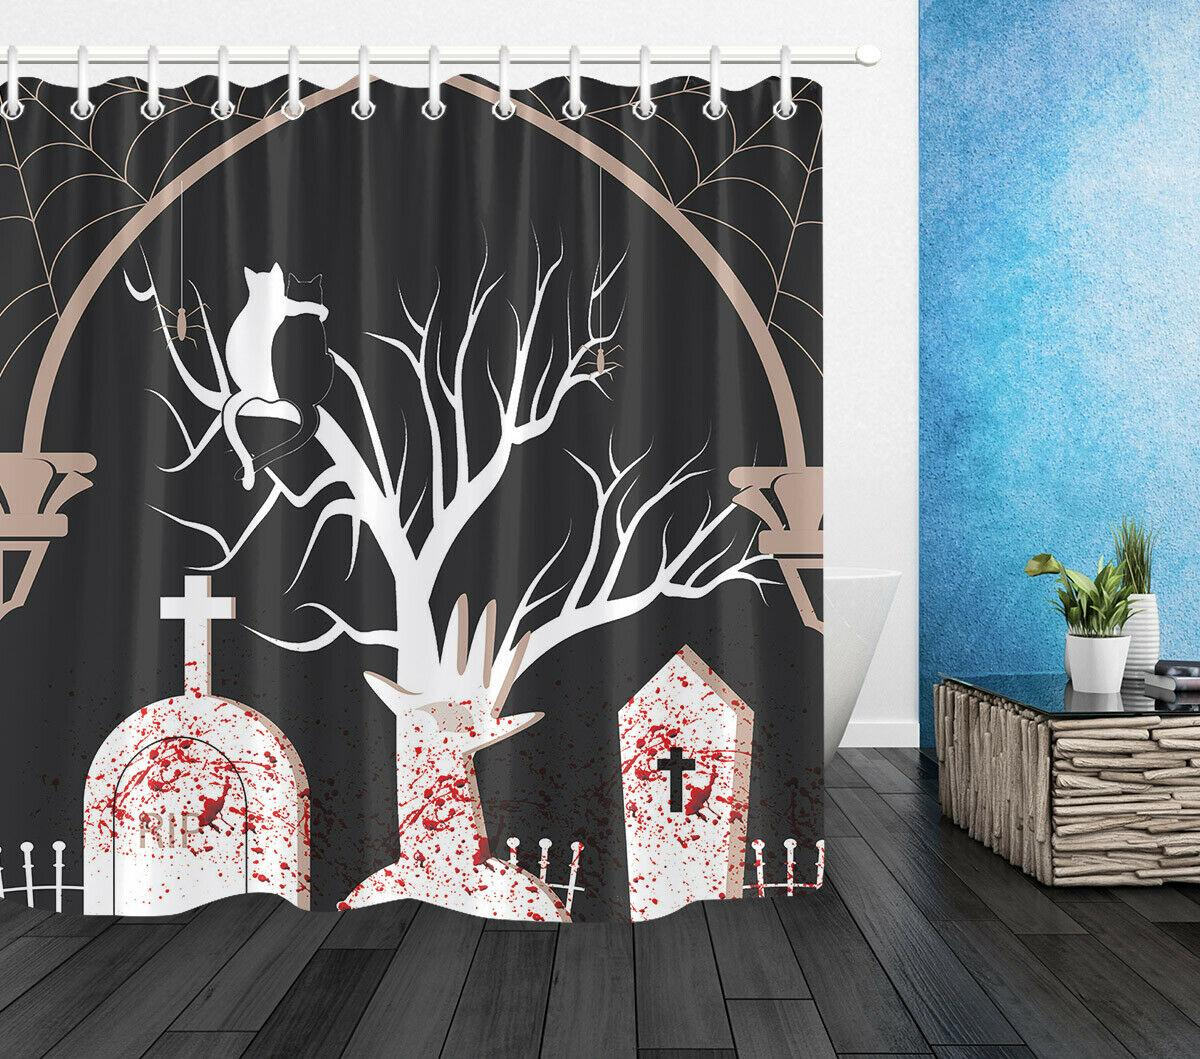 Halloween Bloody Tombstone Cat Couple Shower CurtainDurable Fabric Mold Proof Bathroom Pendant Creative with 12 Hooks 180X180CM